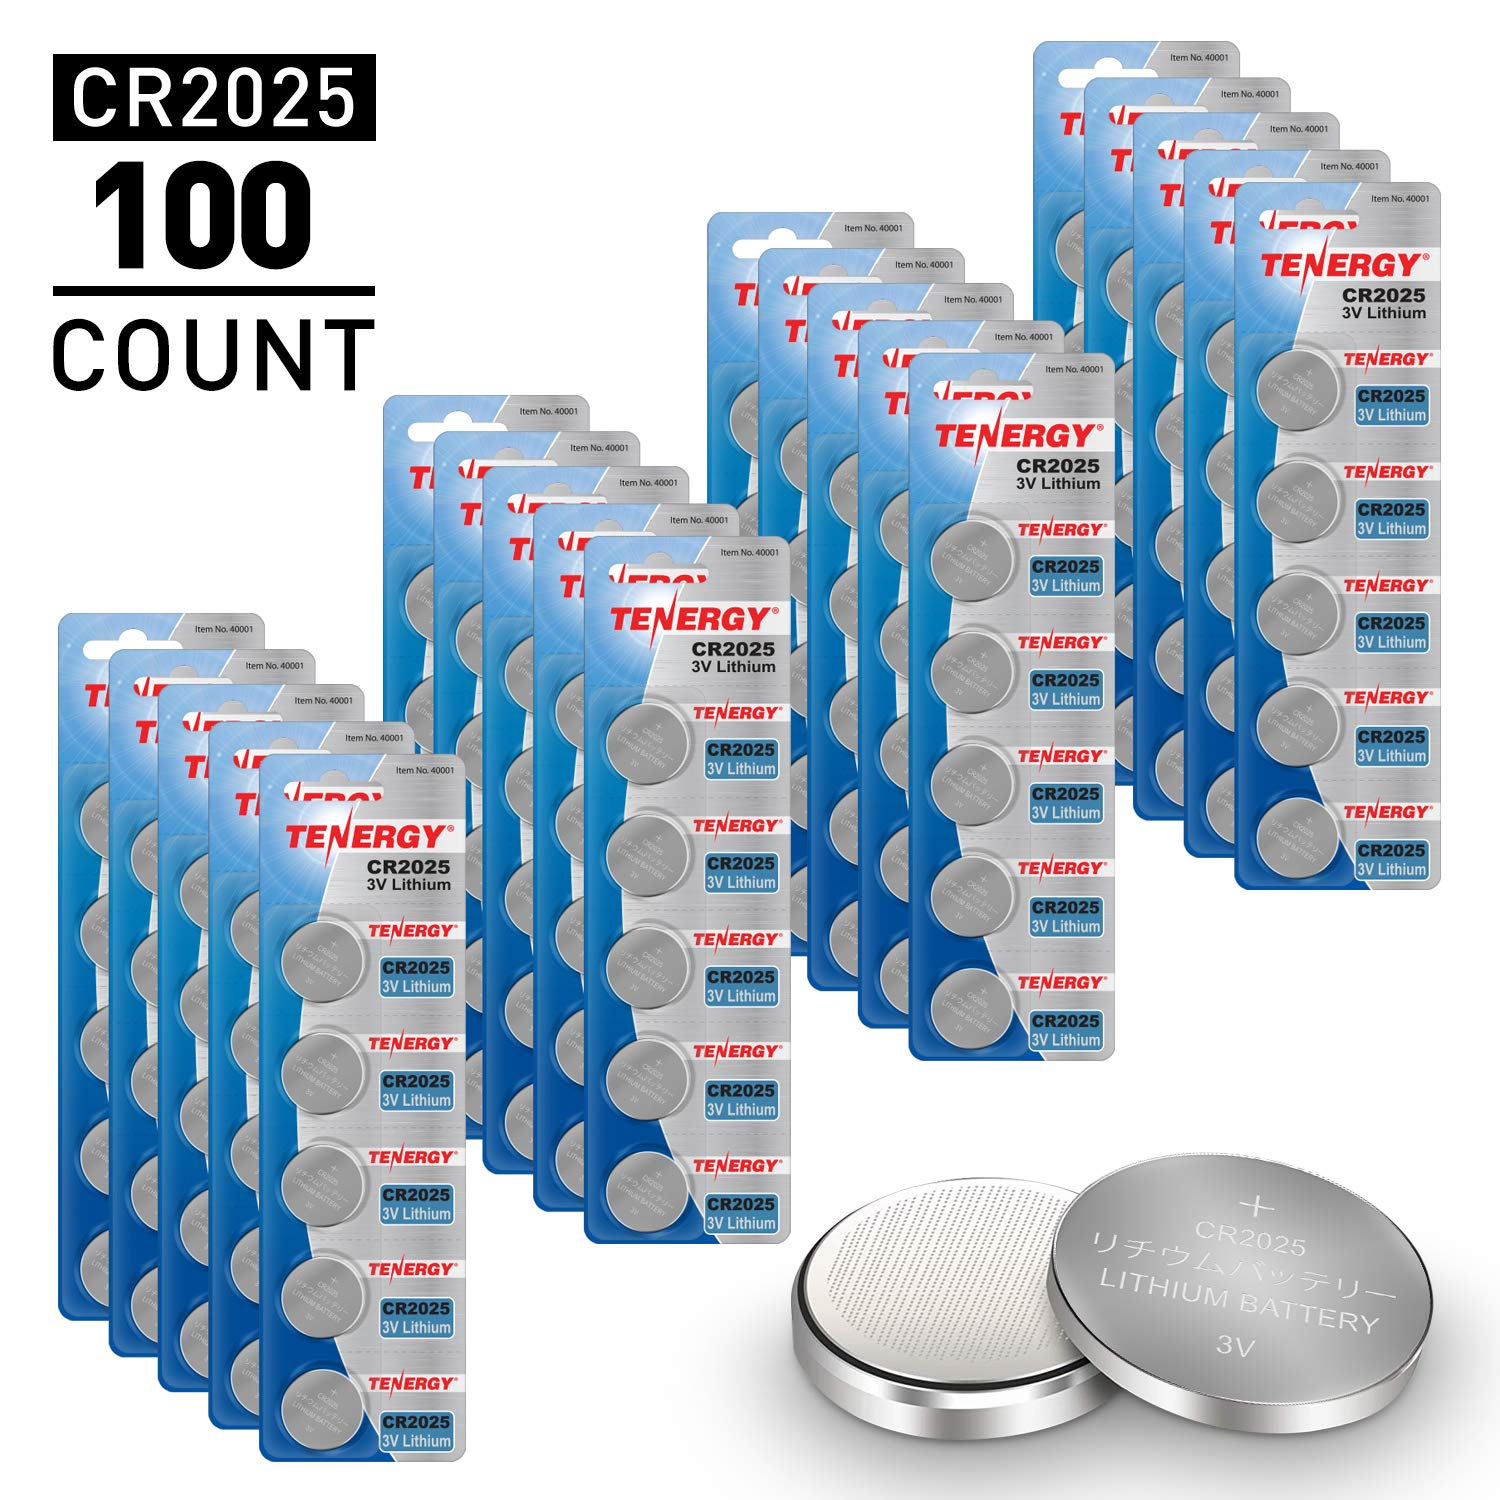 Tenergy CR2025 3V Lithium Button Coin Cell Batteries, Ideal for Key Fob Battery cr2025, Watches, Calculators, Thermometers, Glucometers, and More, 100 Pack